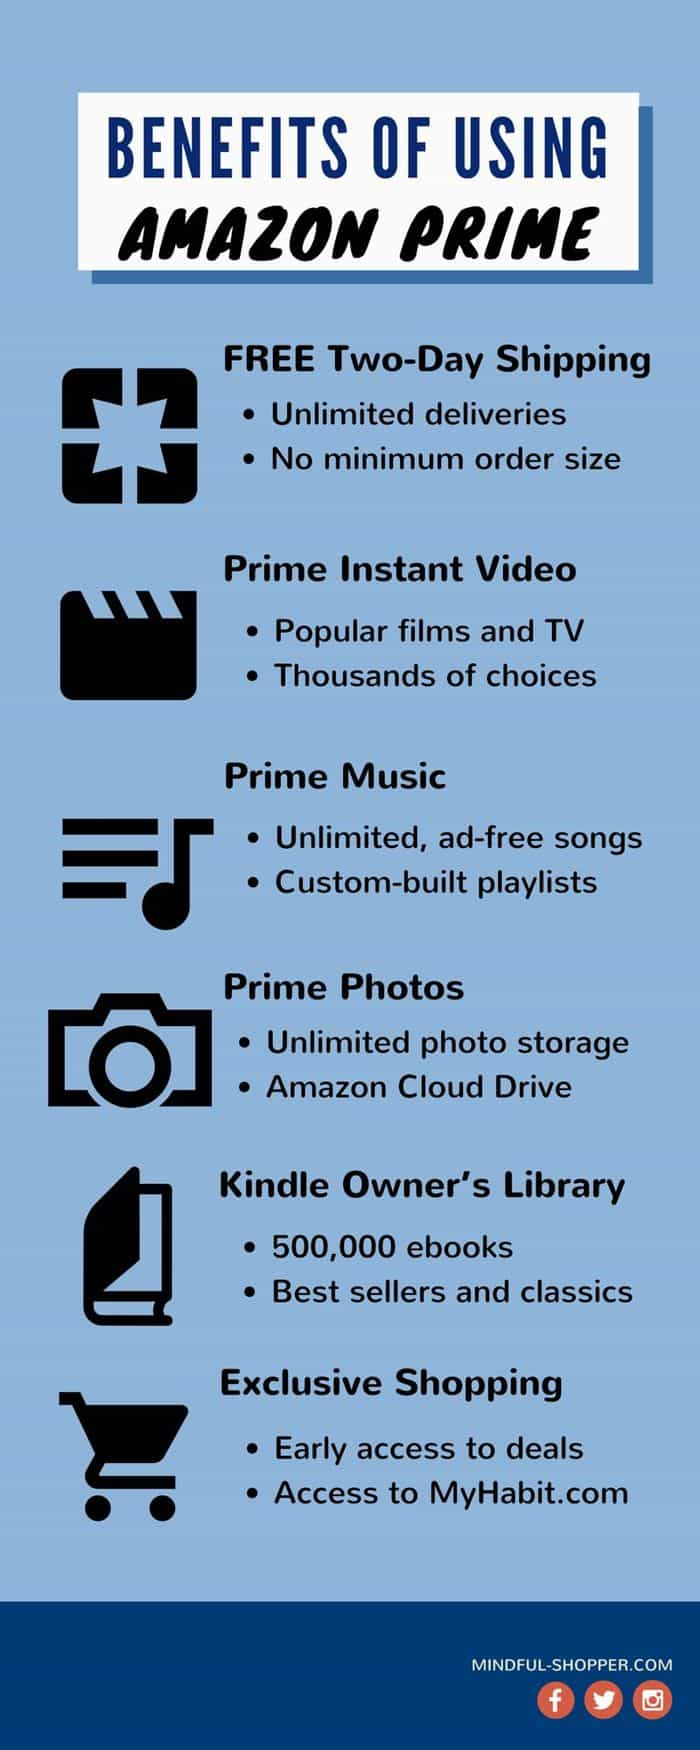 Benefits of Using Amazon Prime | The Mindful Shopper